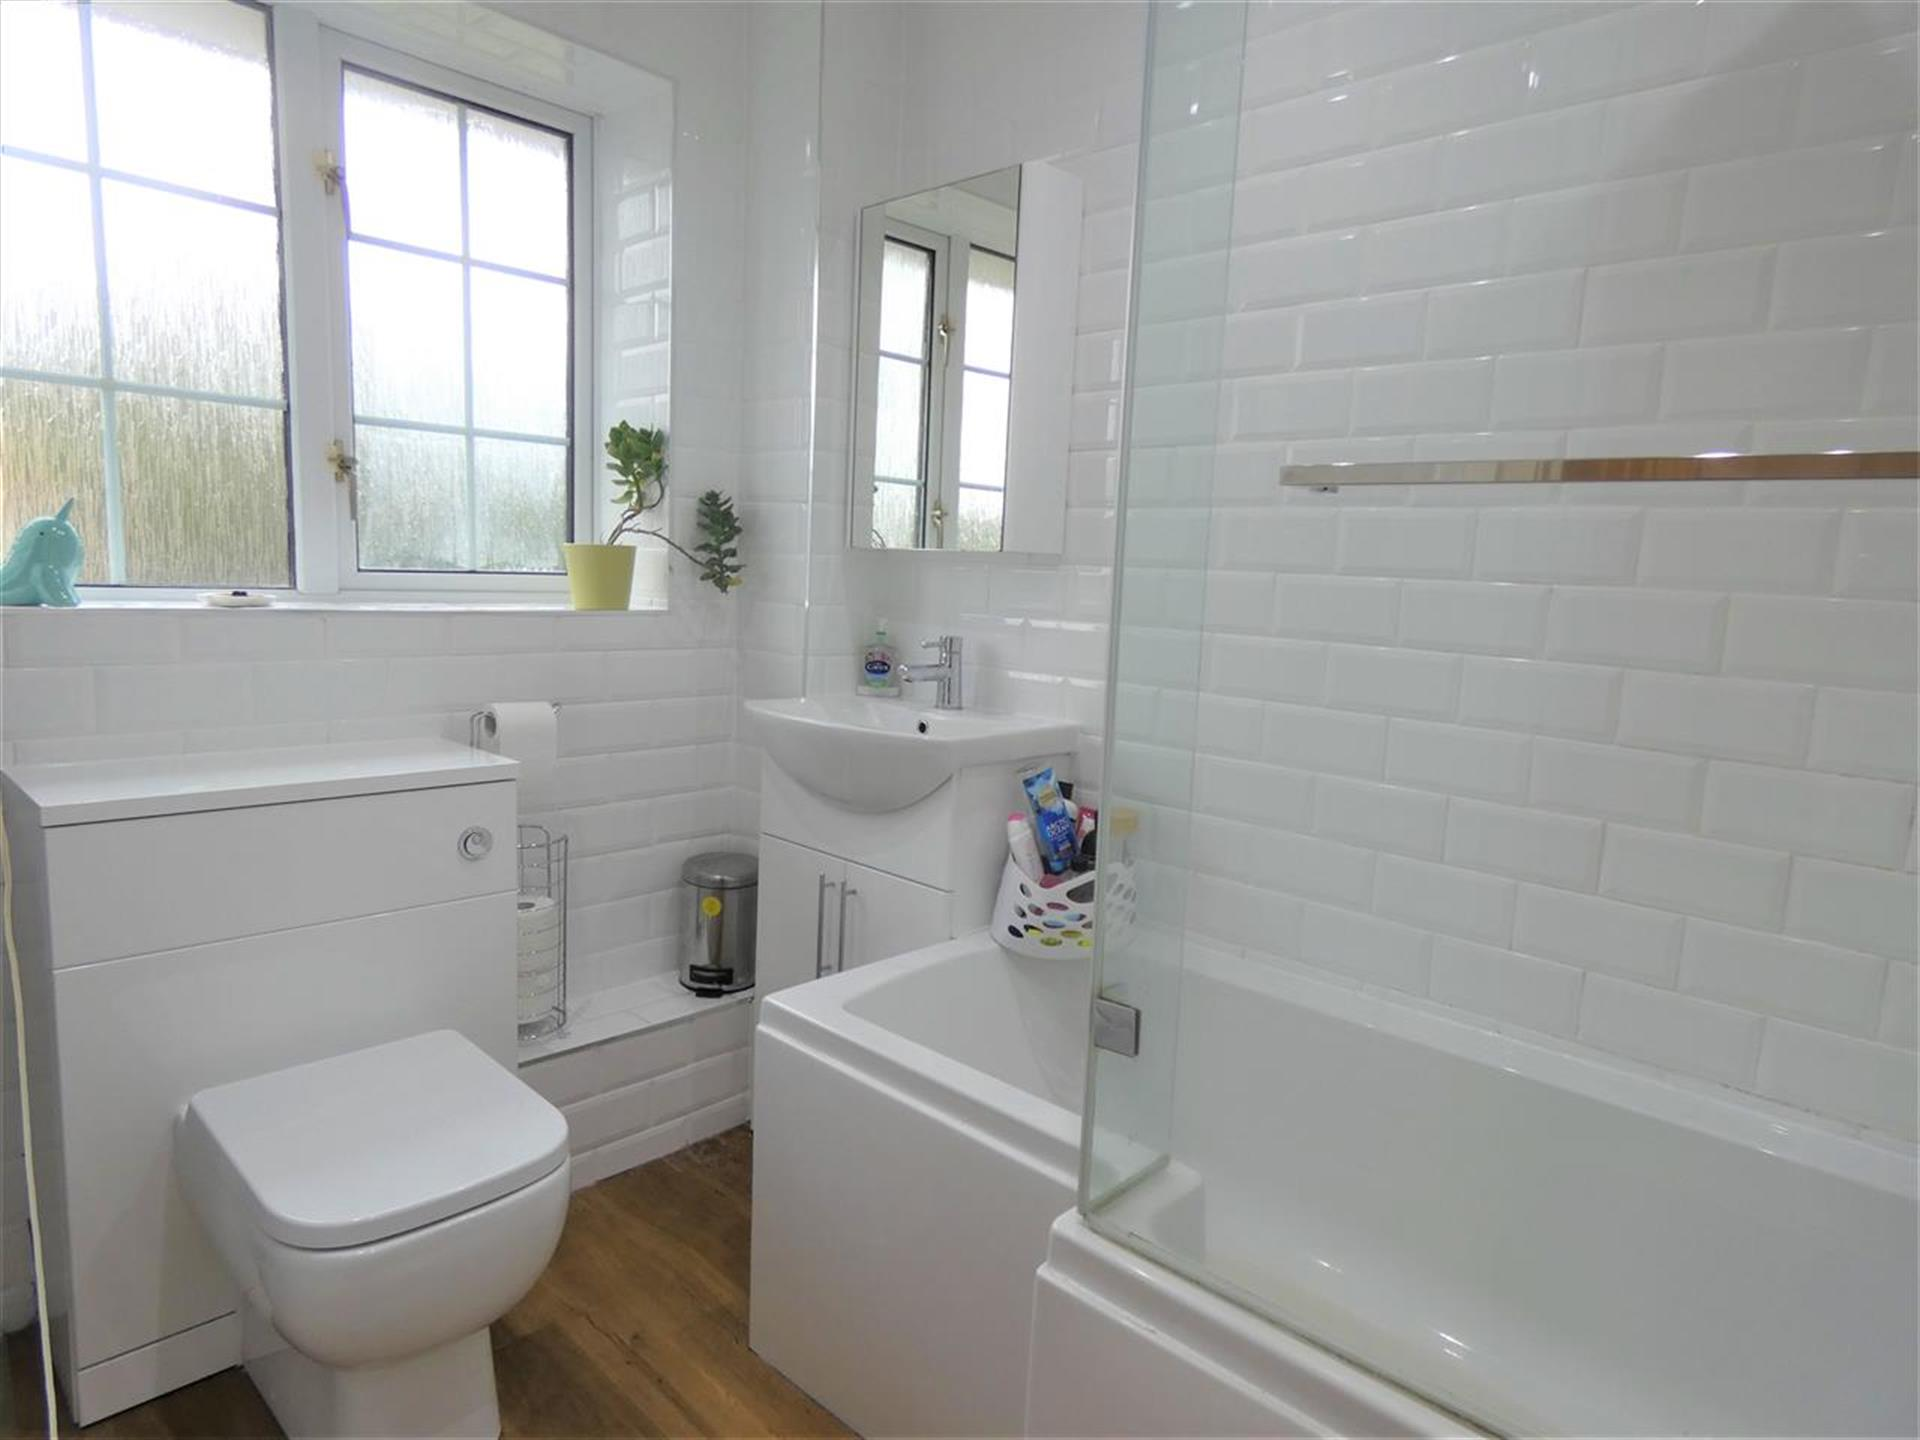 3 Bedroom Semi-detached House For Sale - Bathroom